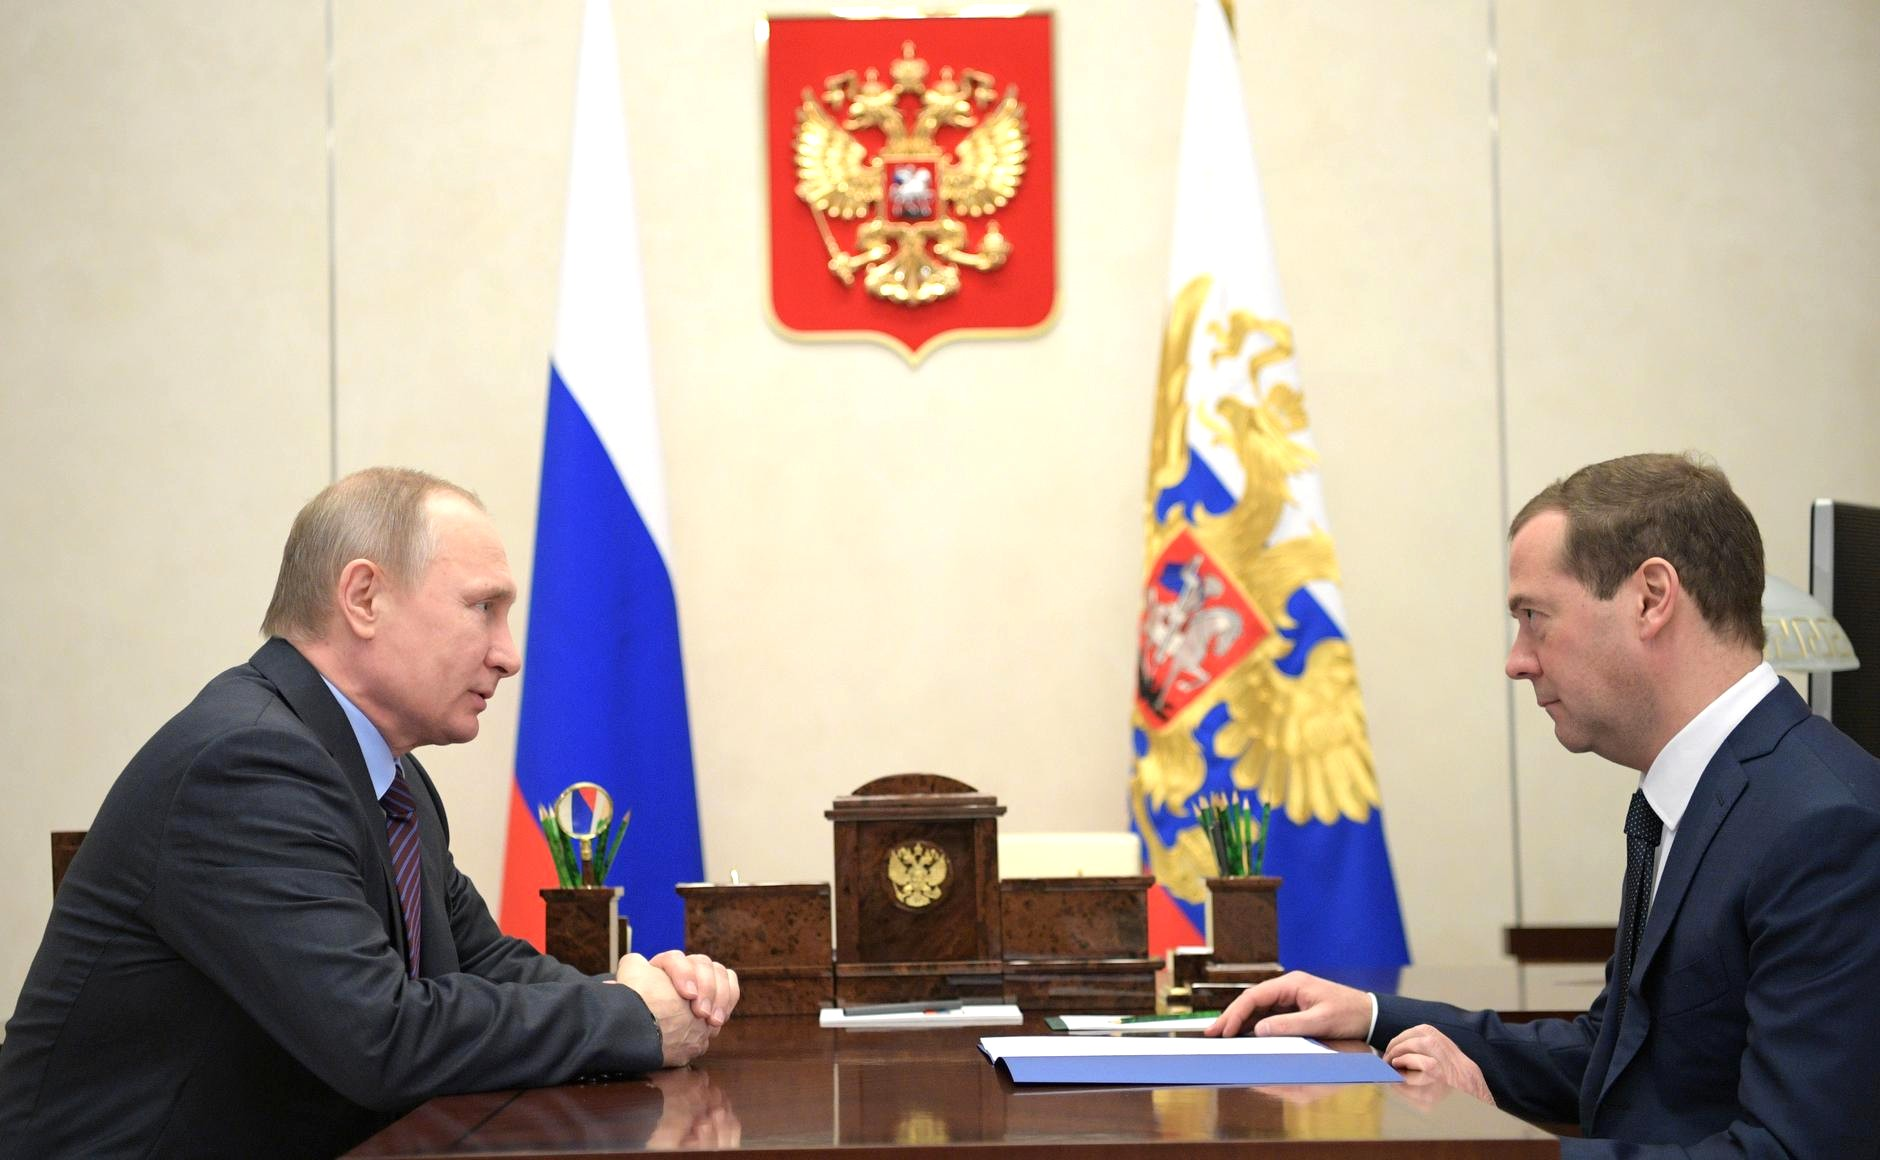 Prime Minister Dmitry Medvedev at the meeting with President Vladimir Putin.